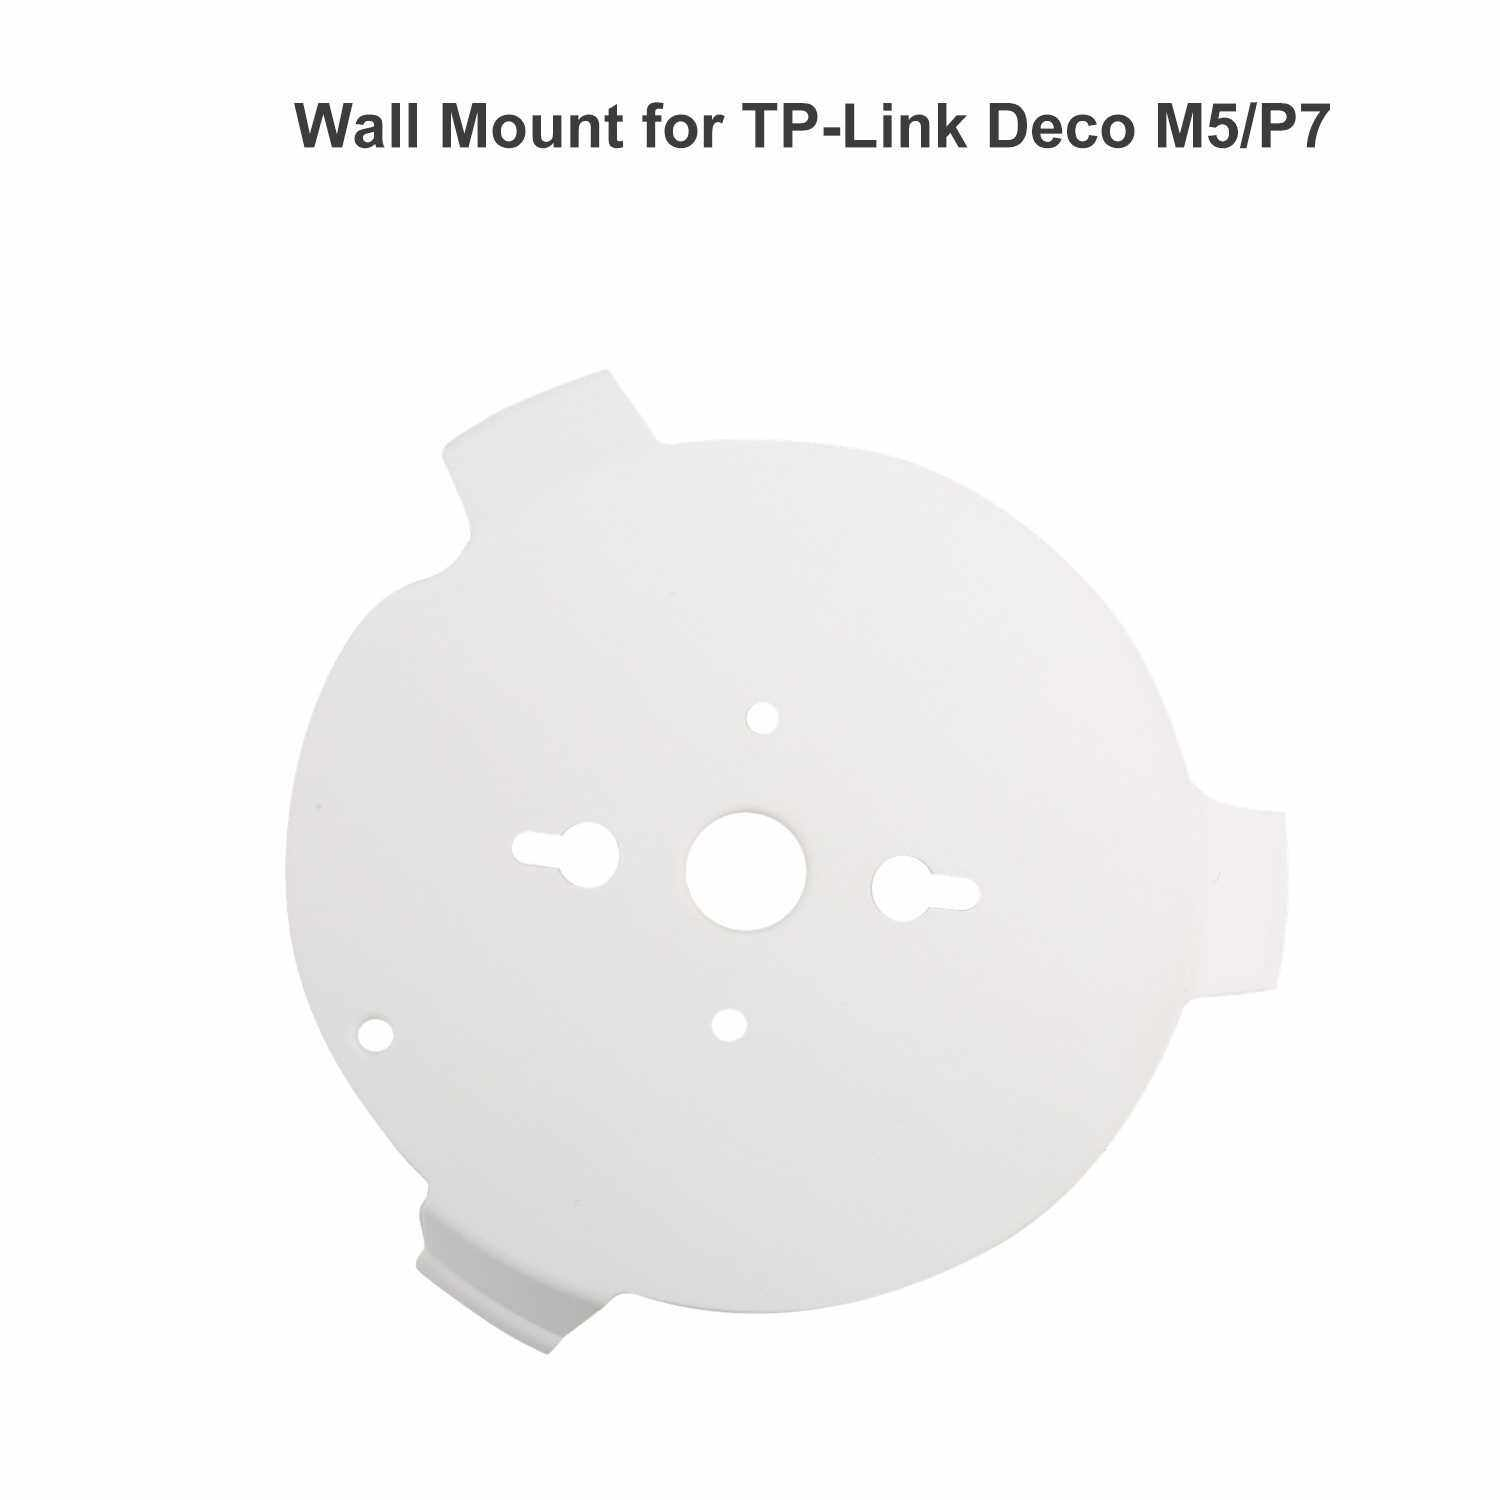 Wall Mount for TP-Link Deco M5/P7 Whole Home Mesh WiFi System, Sturdy Bracket Holder for Deco M5 Router/P7 Space Saving TP-Link Router Wall Holder, White, 2 Pack (White)